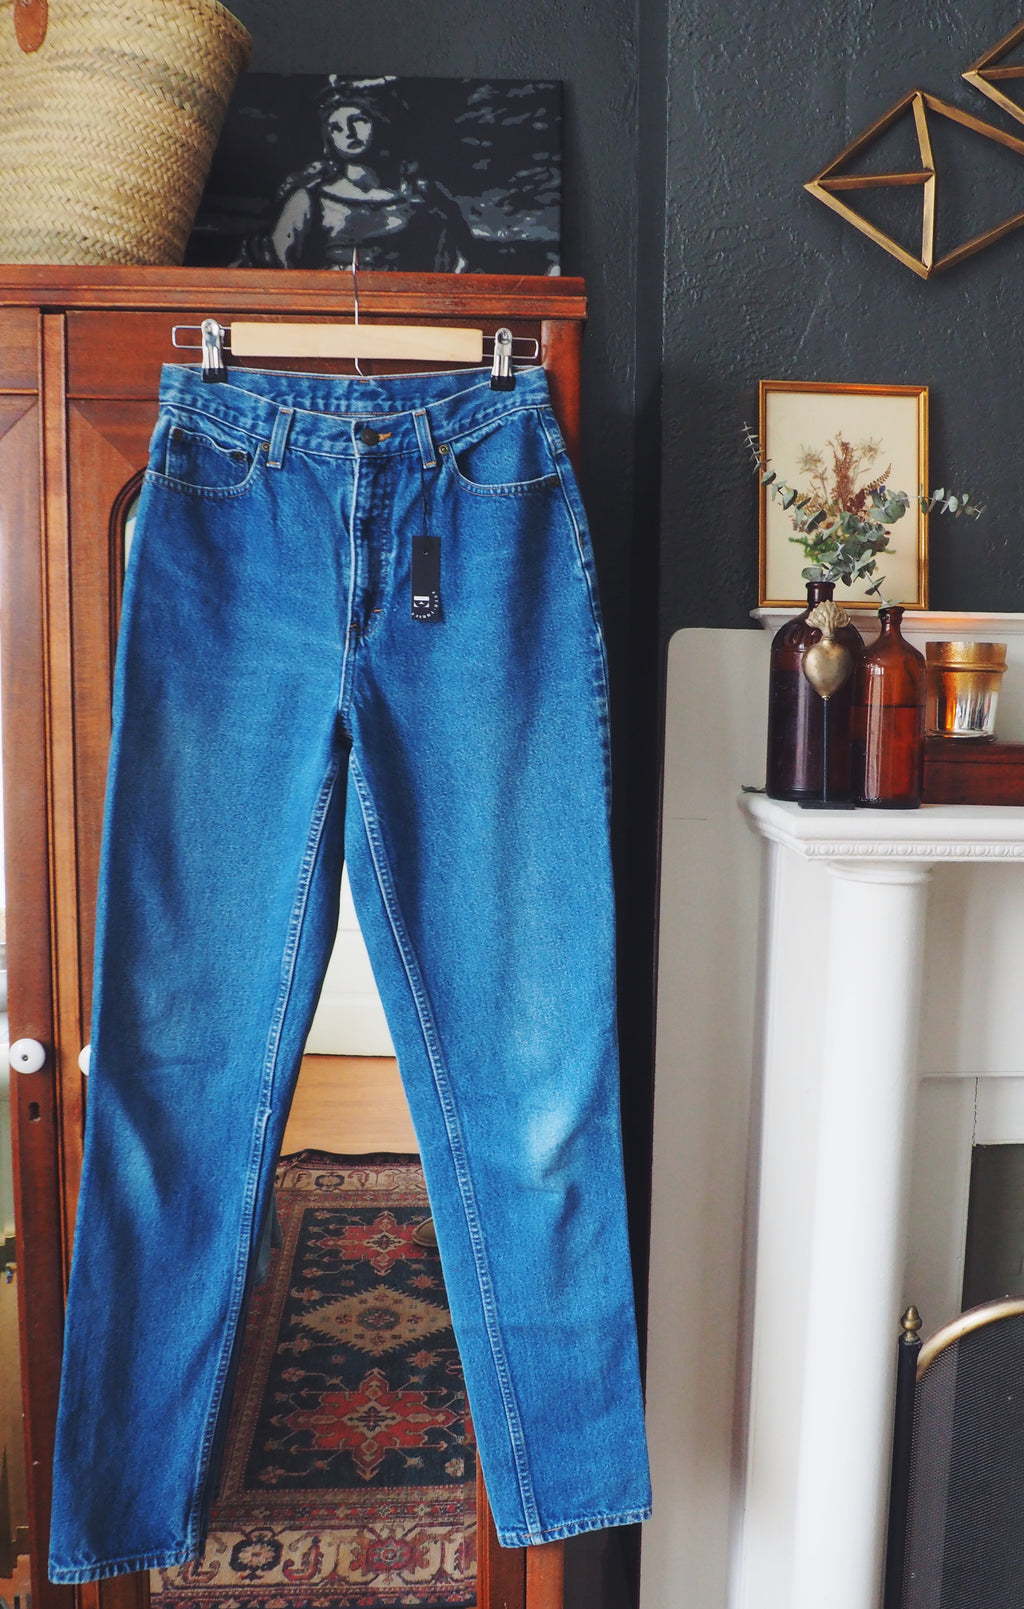 Vintage 100% Cotton High-Waisted Jeans